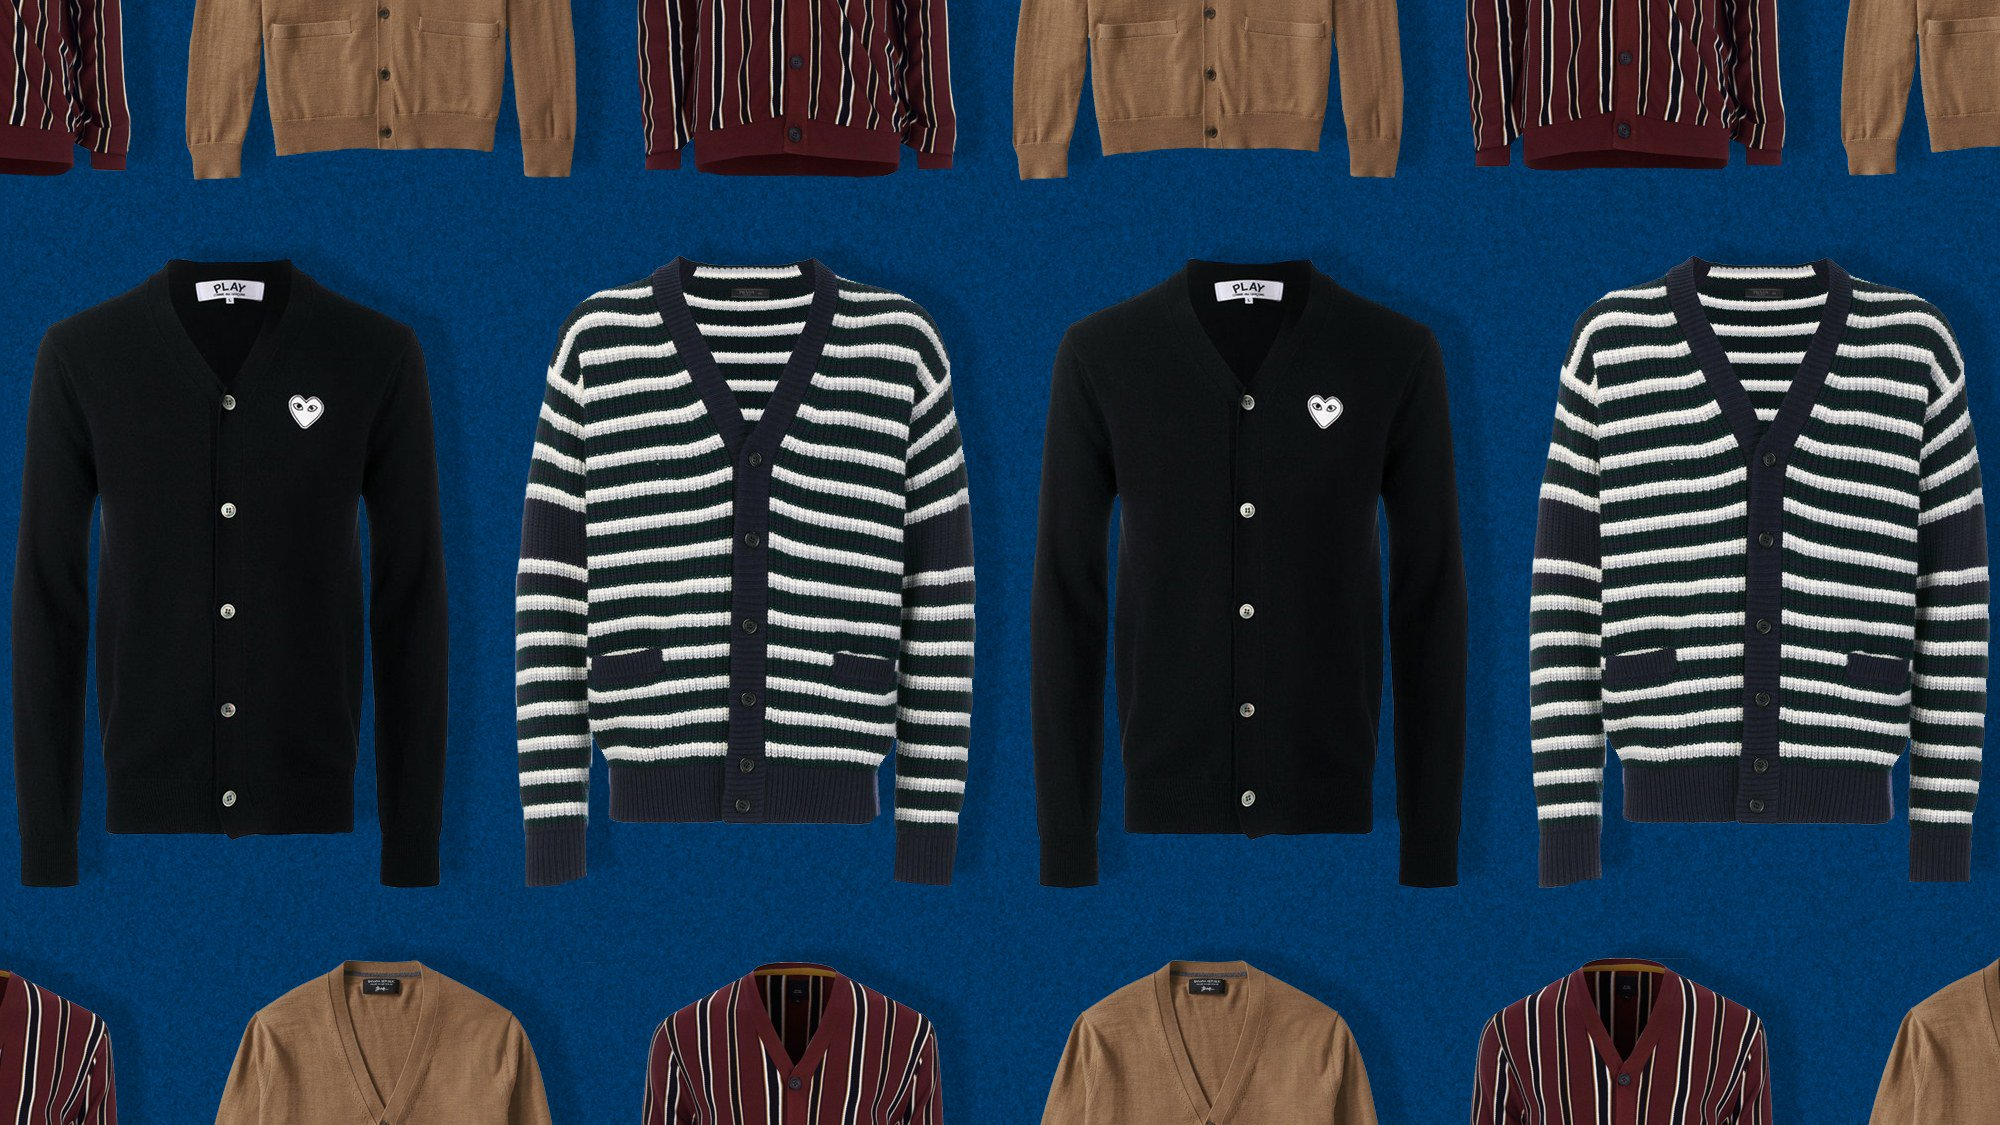 10 lightweight cardigans to layer under every kind of suit jacket photos https://t.co/BP5merTPES https://t.co/4mhV4Sx5z0